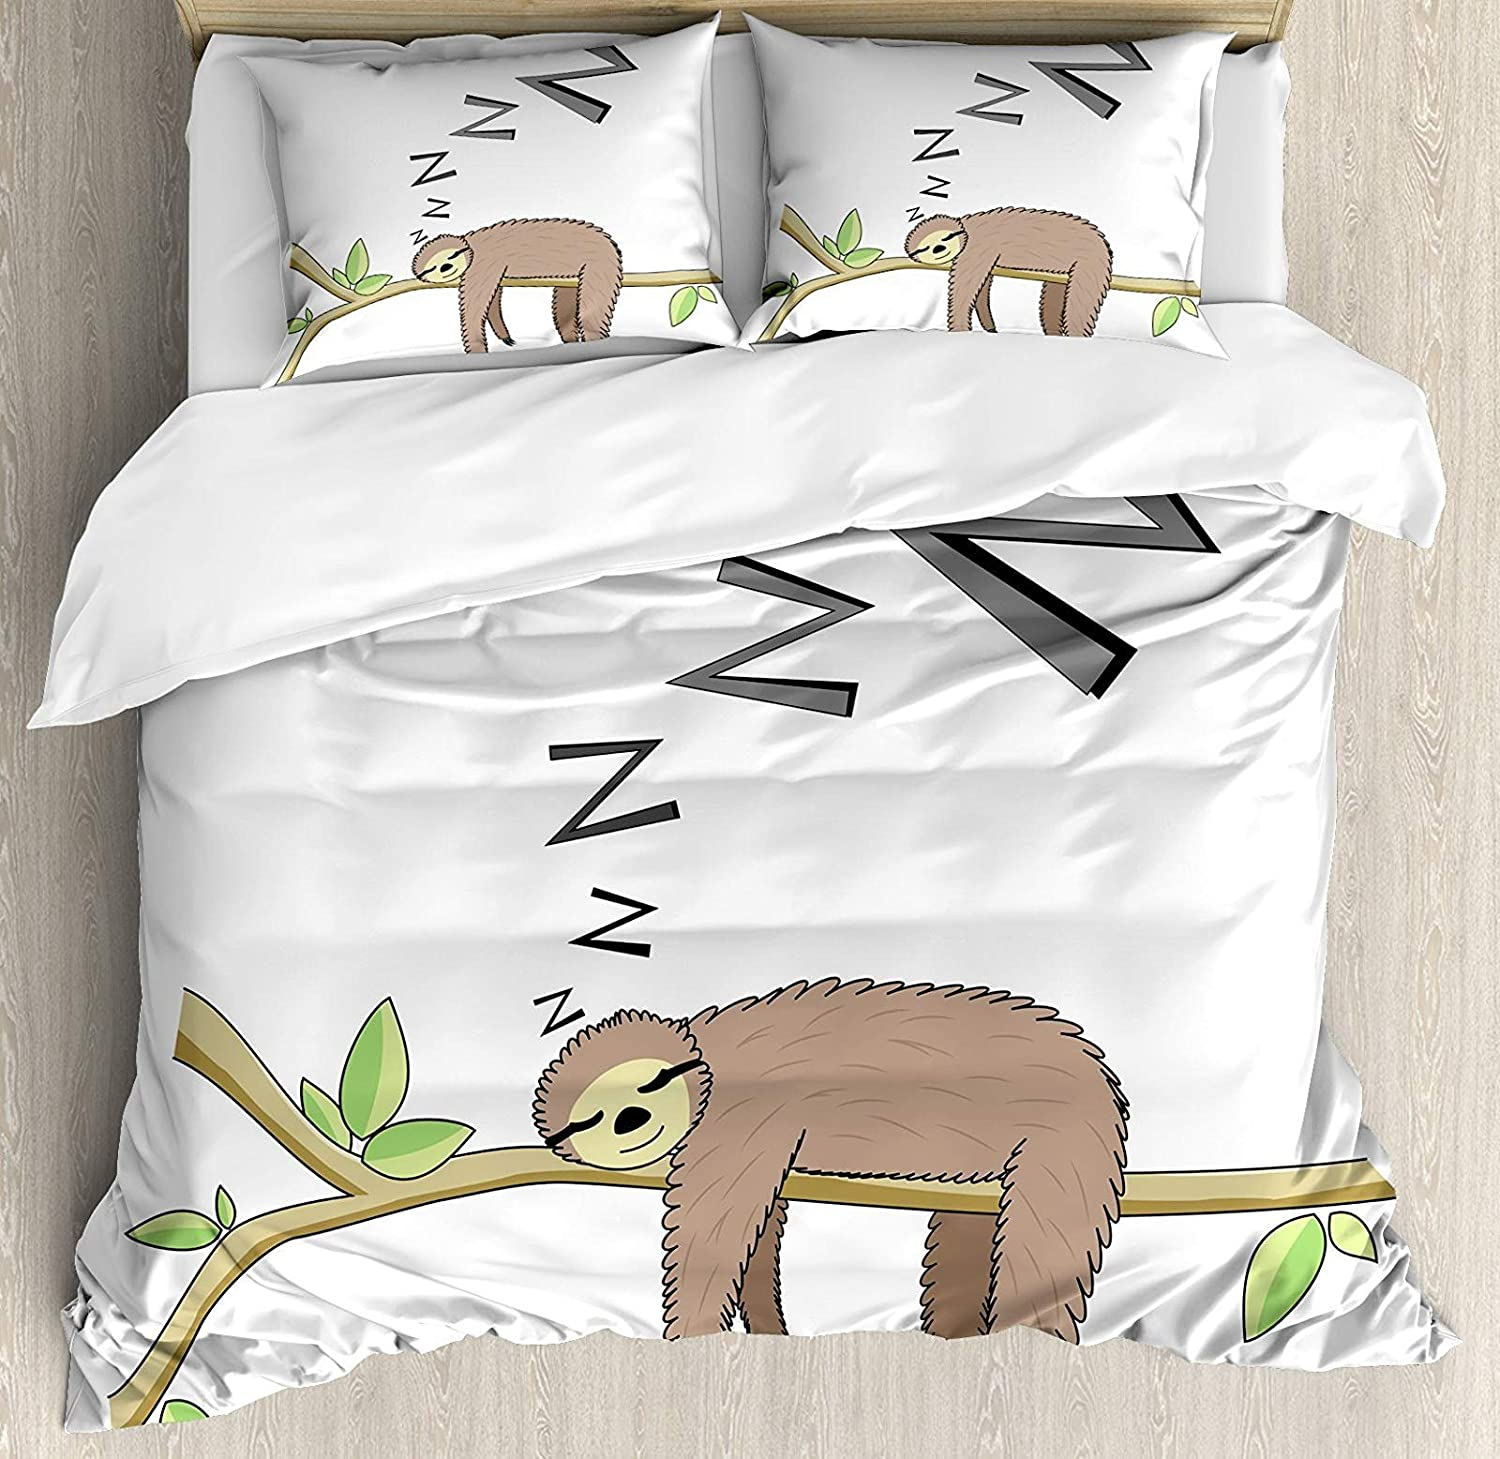 Sloth 4 Pcs Bedding Set Twin Size, Arboreal Mammal Sleeping on Branch in Forest Lazy Mood Resting Relaxing Theme All Season Duvet Cover Bed Set, Grey Green Brown